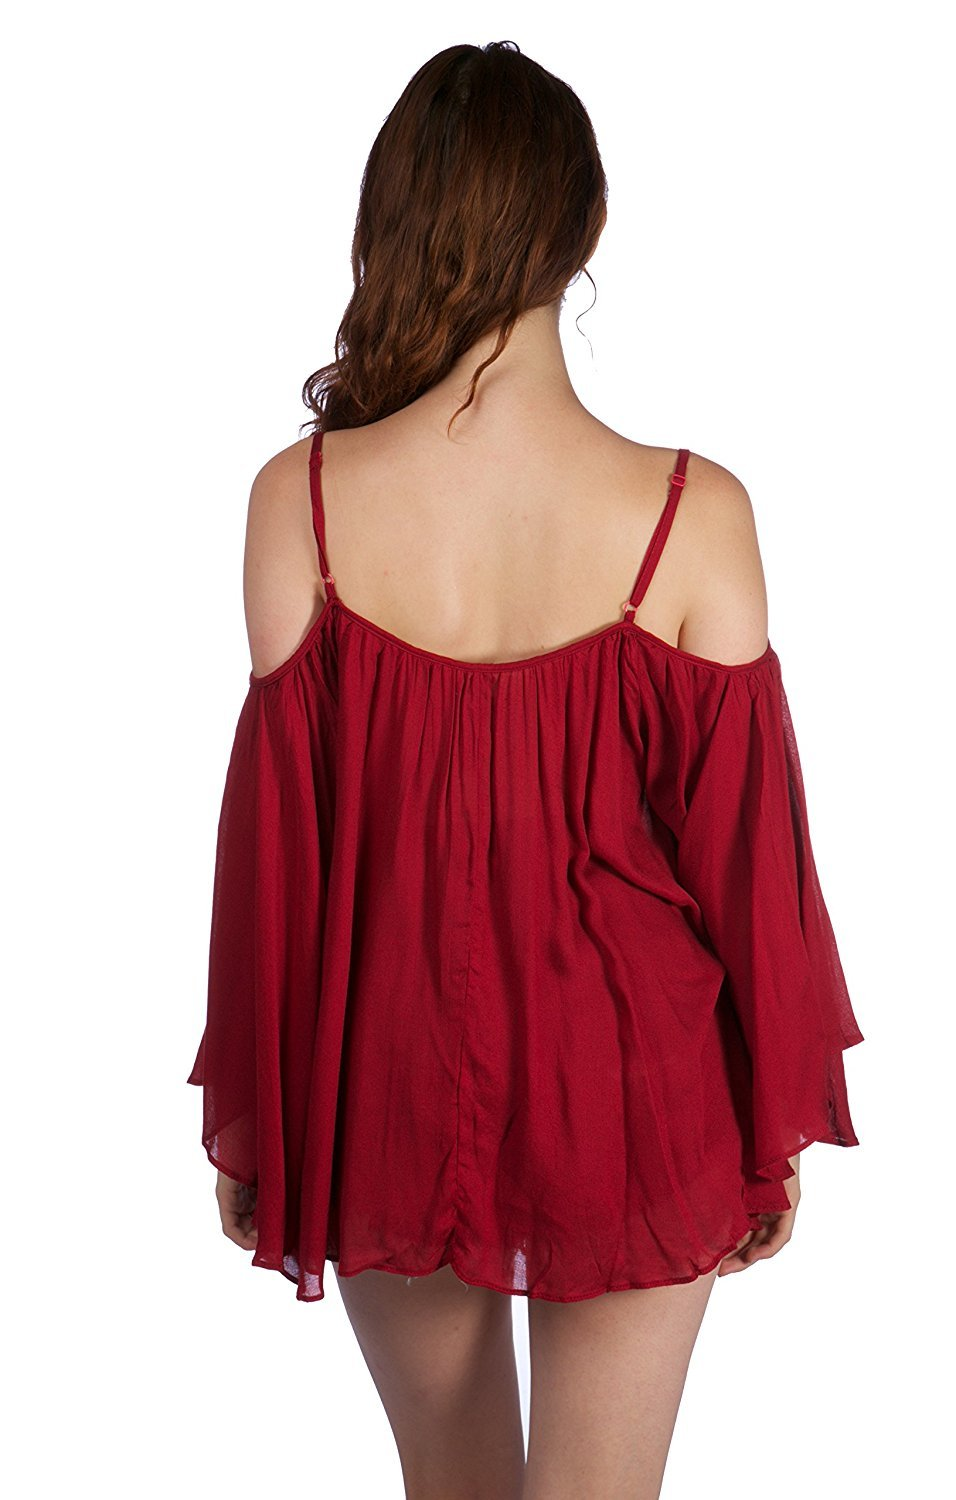 Bohemian Off Shoulder Top With Adjustable Straps and Wide Arm